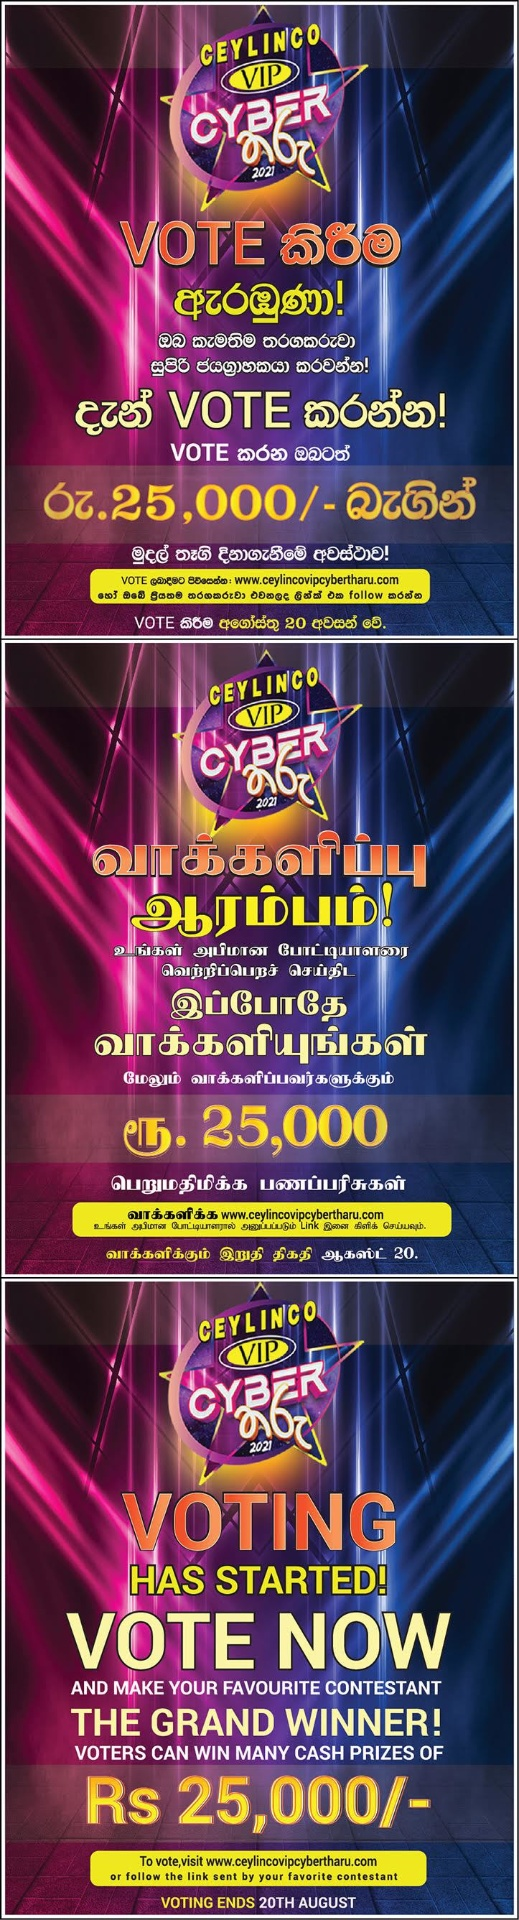 Ceylinco VIP 'Cyber Tharu' - Vote Now and Win Many Cash Prizes of Rs 25,000/-